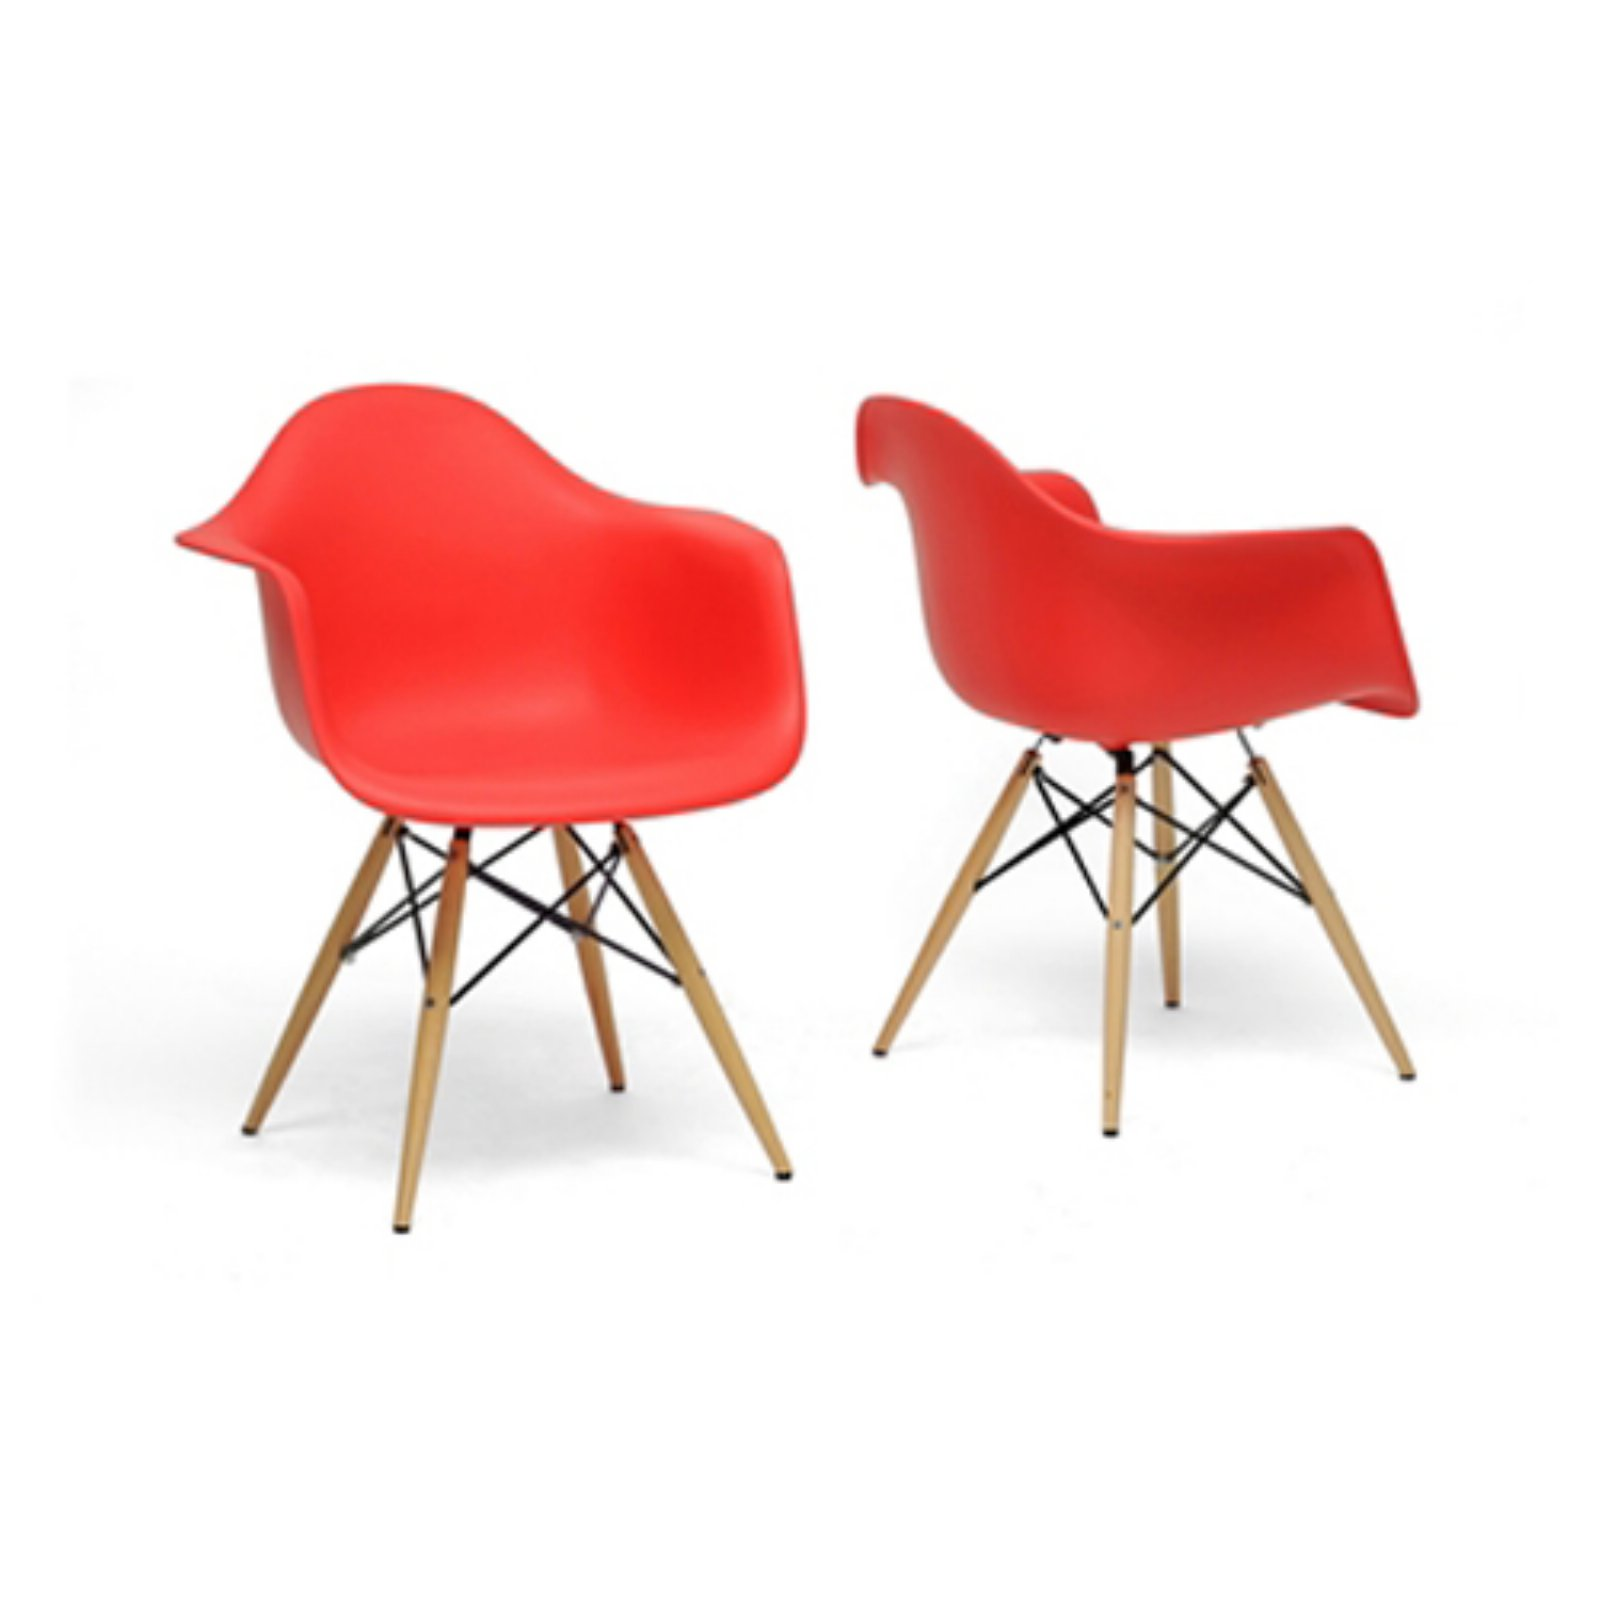 Baxton Studio Pascal Modern Dining Chair - Set of 2